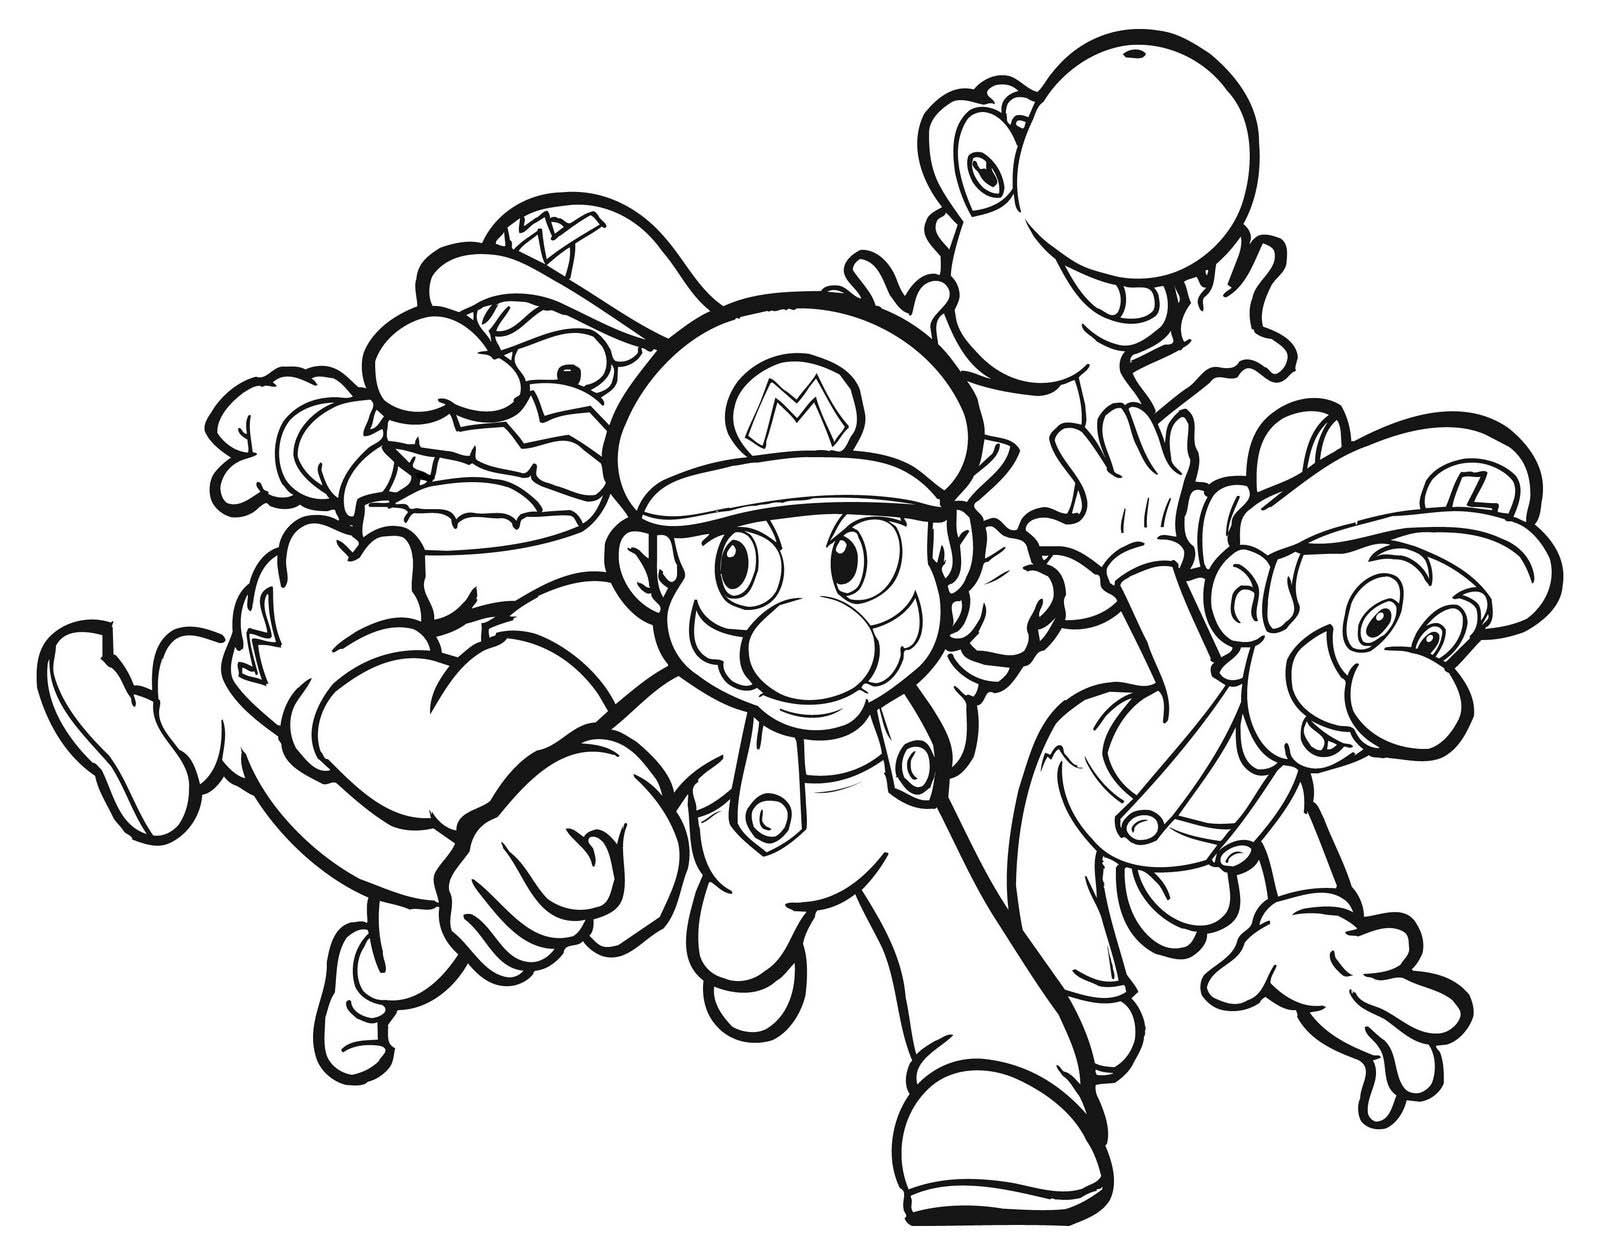 Mario Kart Coloring Pages Super Mario Coloring Pages 5  Coloring Kids